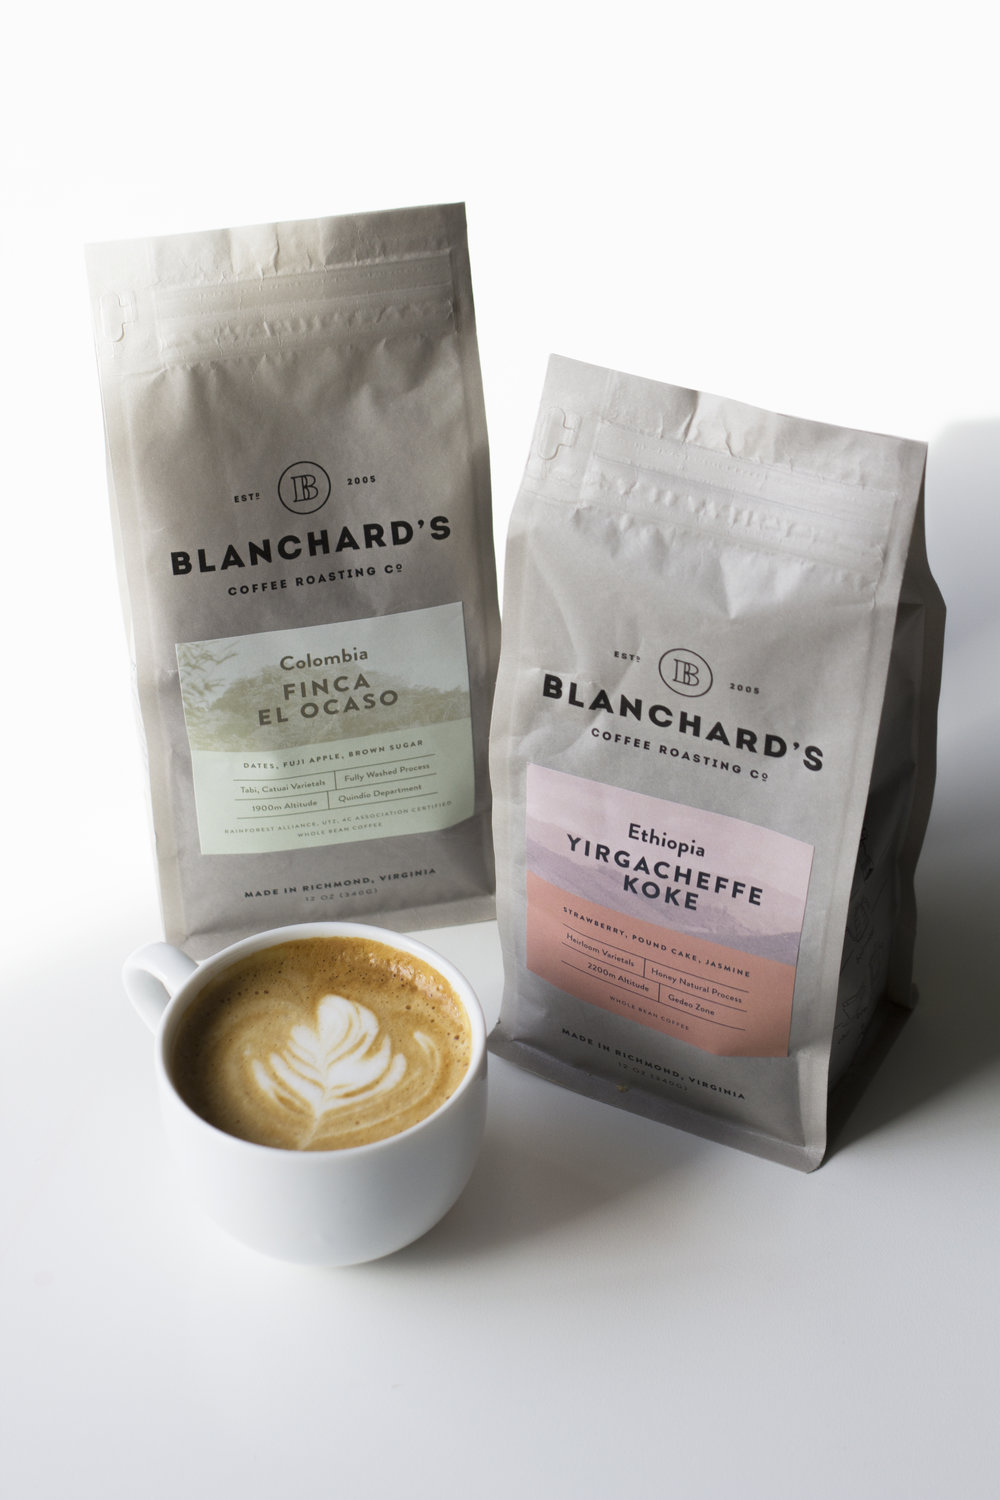 COFFEE + TEA - Proudly serving Blanchard's Coffee and Passenger Teas